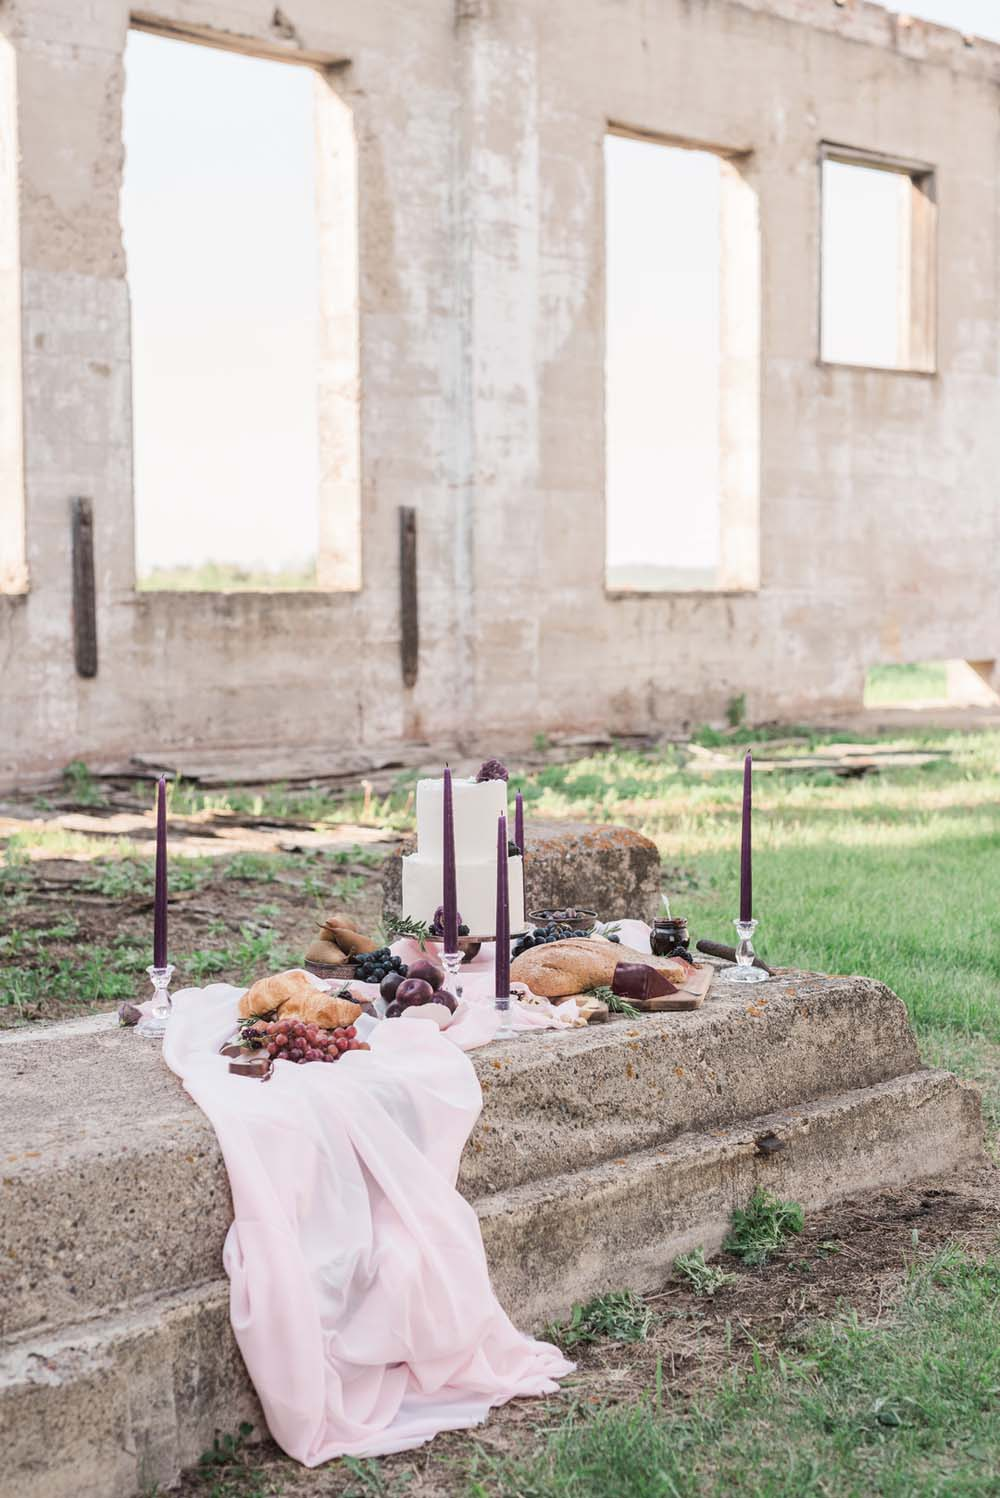 A Romantic Themed Shoot Inspired by Ruins - candles and food